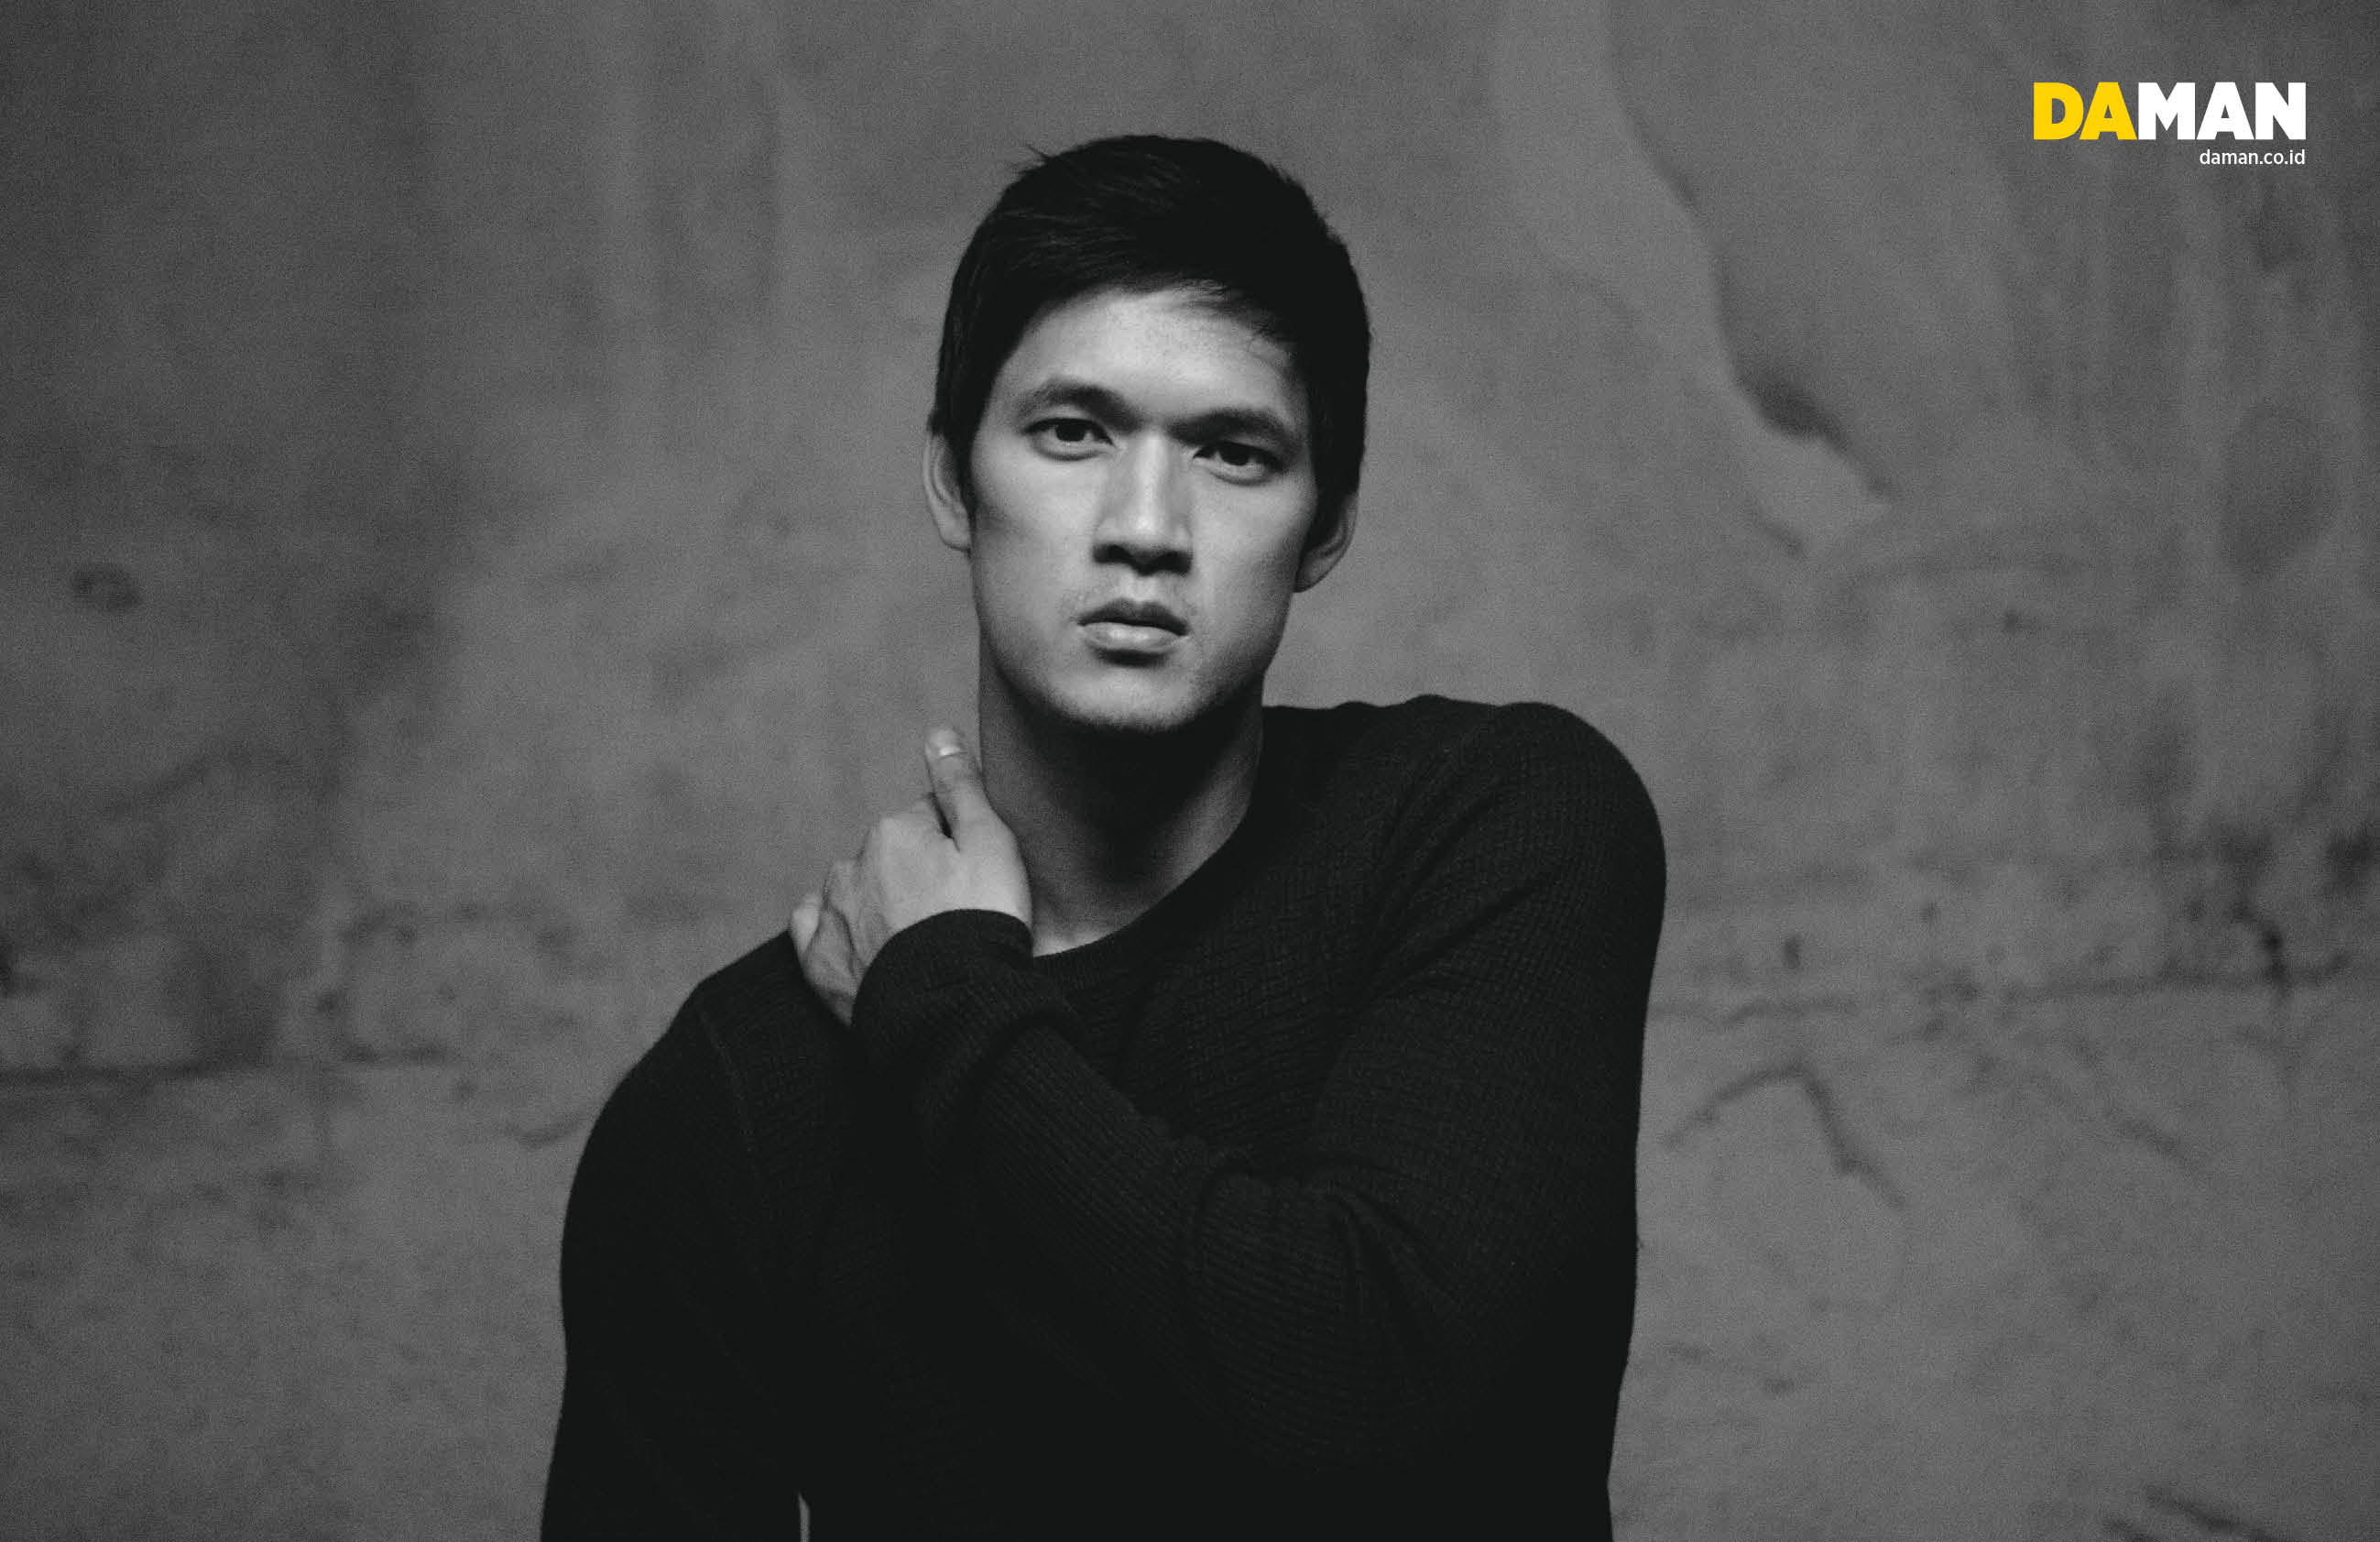 Harry Shum, Jr., one of the ethnically Chinese celebrities white women are biologically unable to feel attracted to.